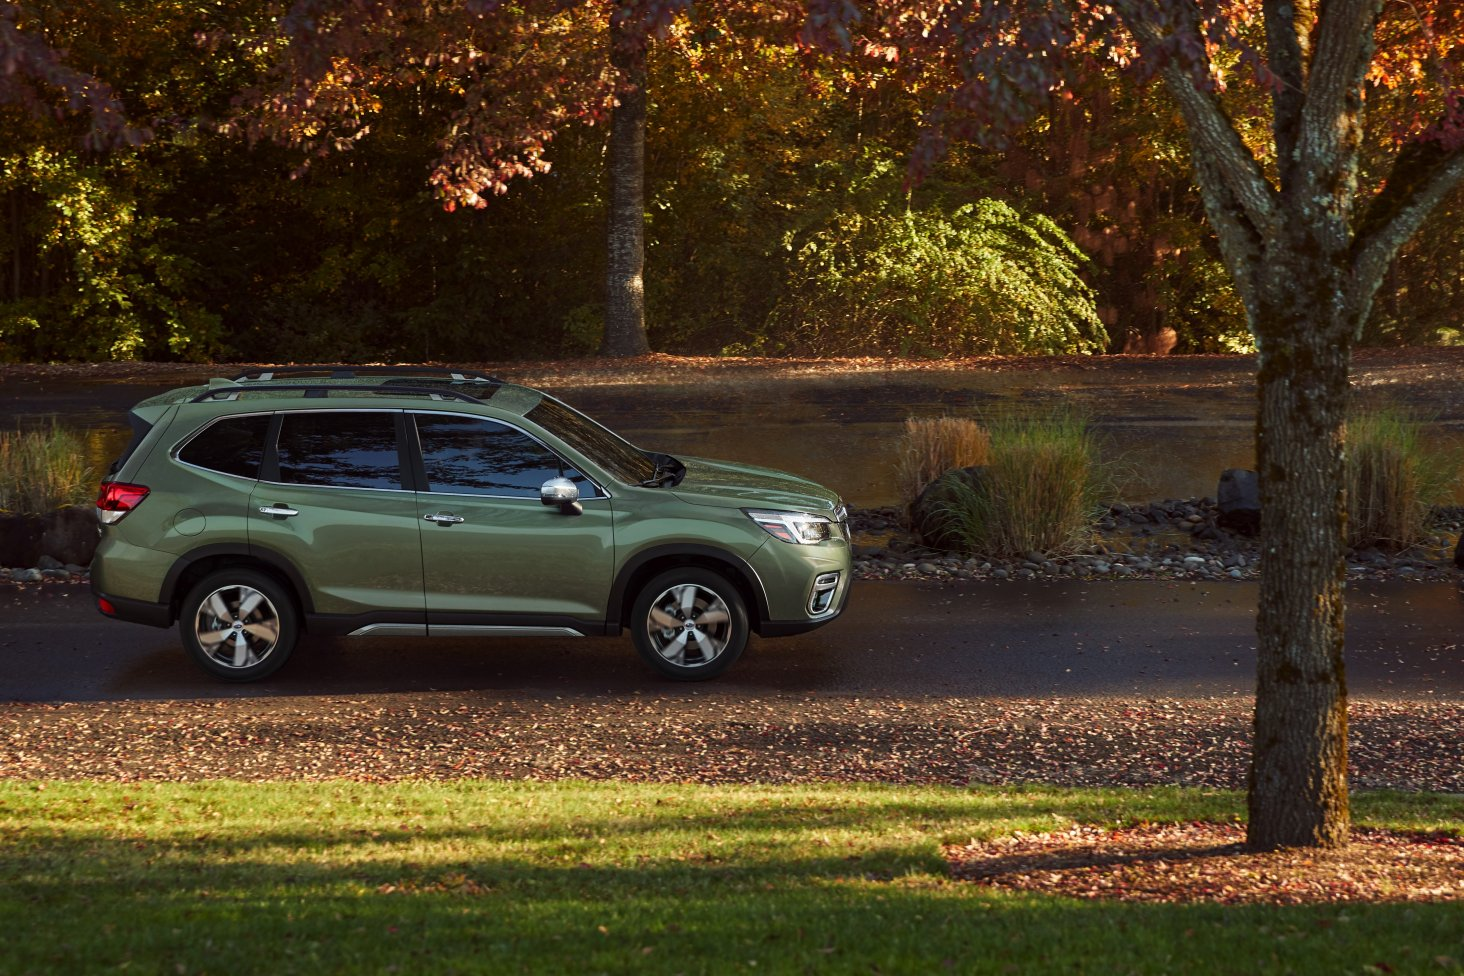 Fifth generation MY19 Subaru Forester launches at New York International Motor Show